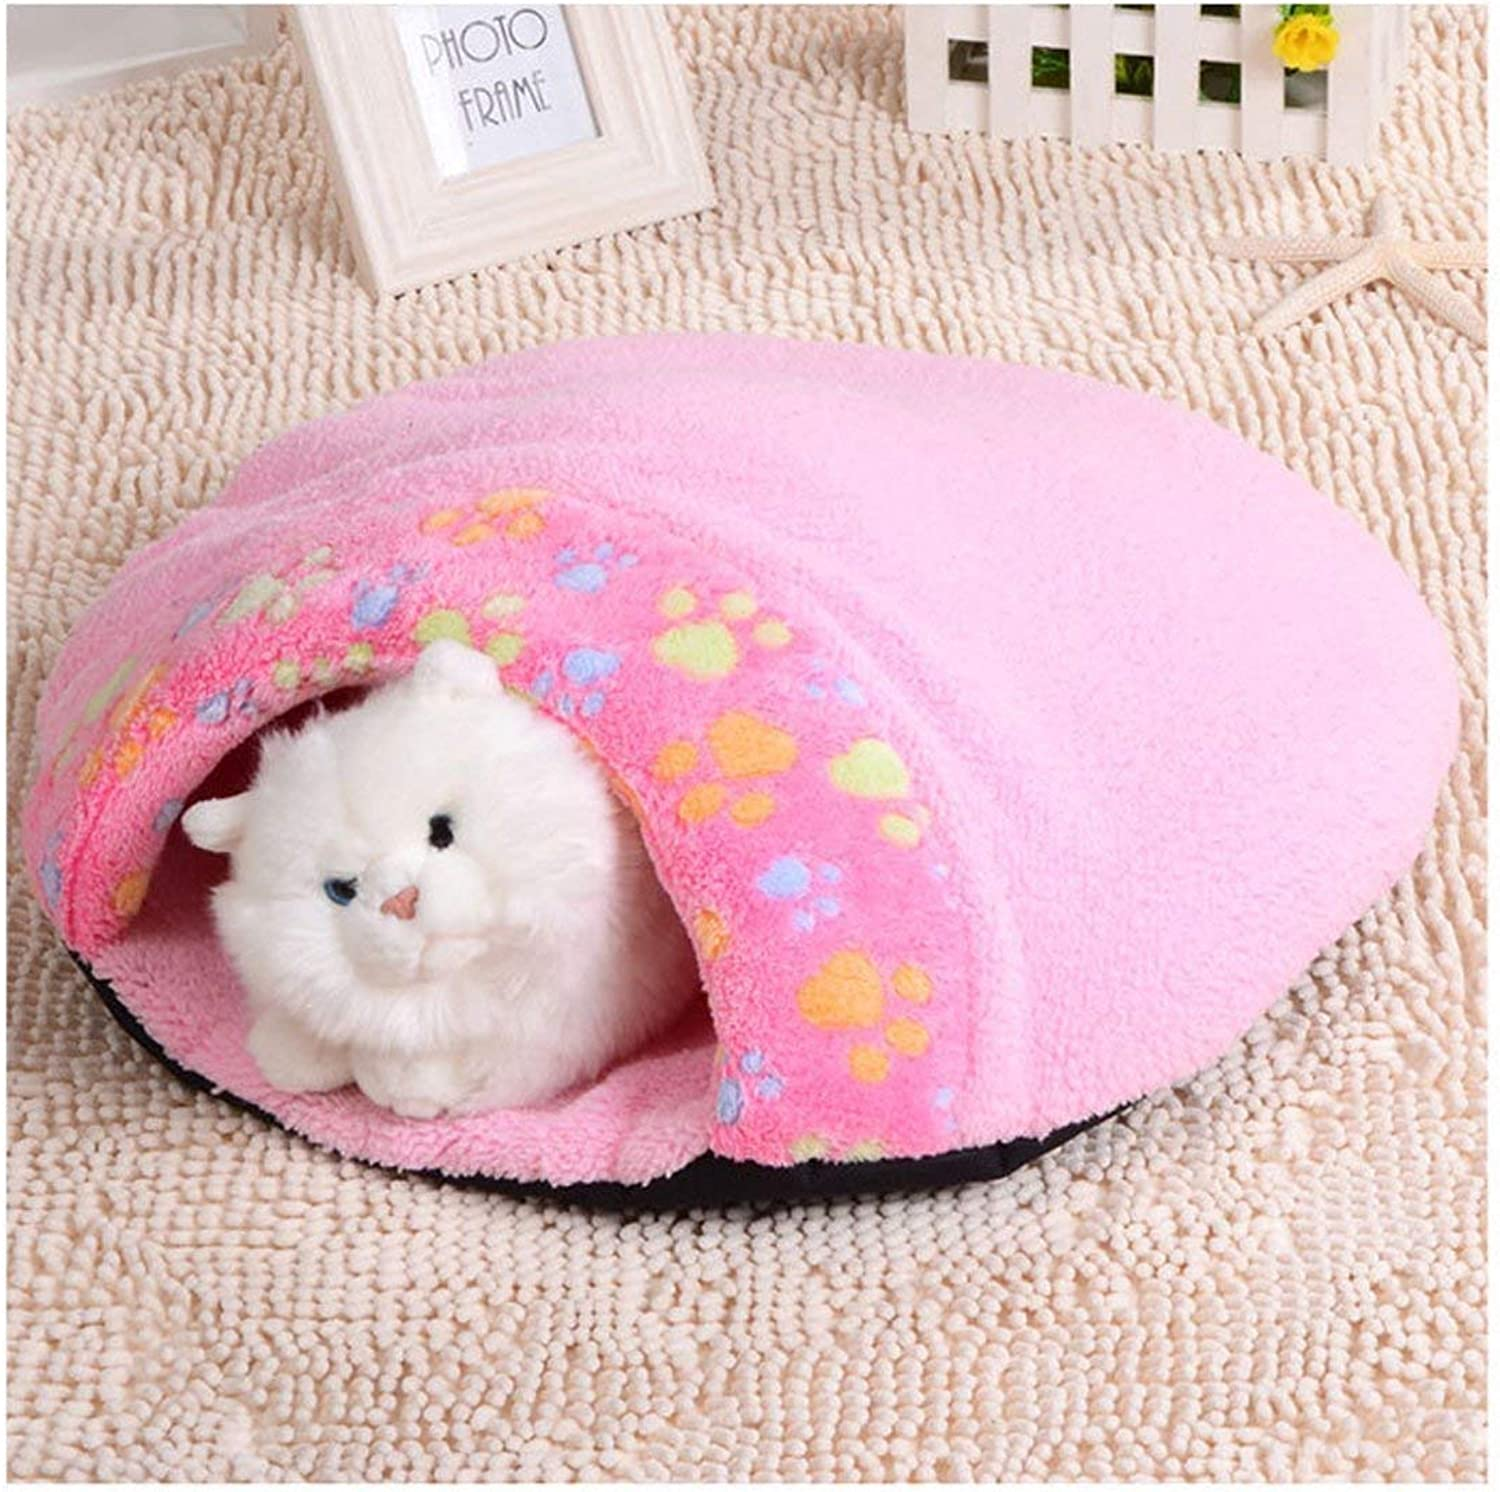 YQSMYSW Cat Cave Beds Kitty Bed Mats Paw Print 2 in 1 Indoor Pets Bed (L 60  50  16 cm, Pink) for Cat Dog